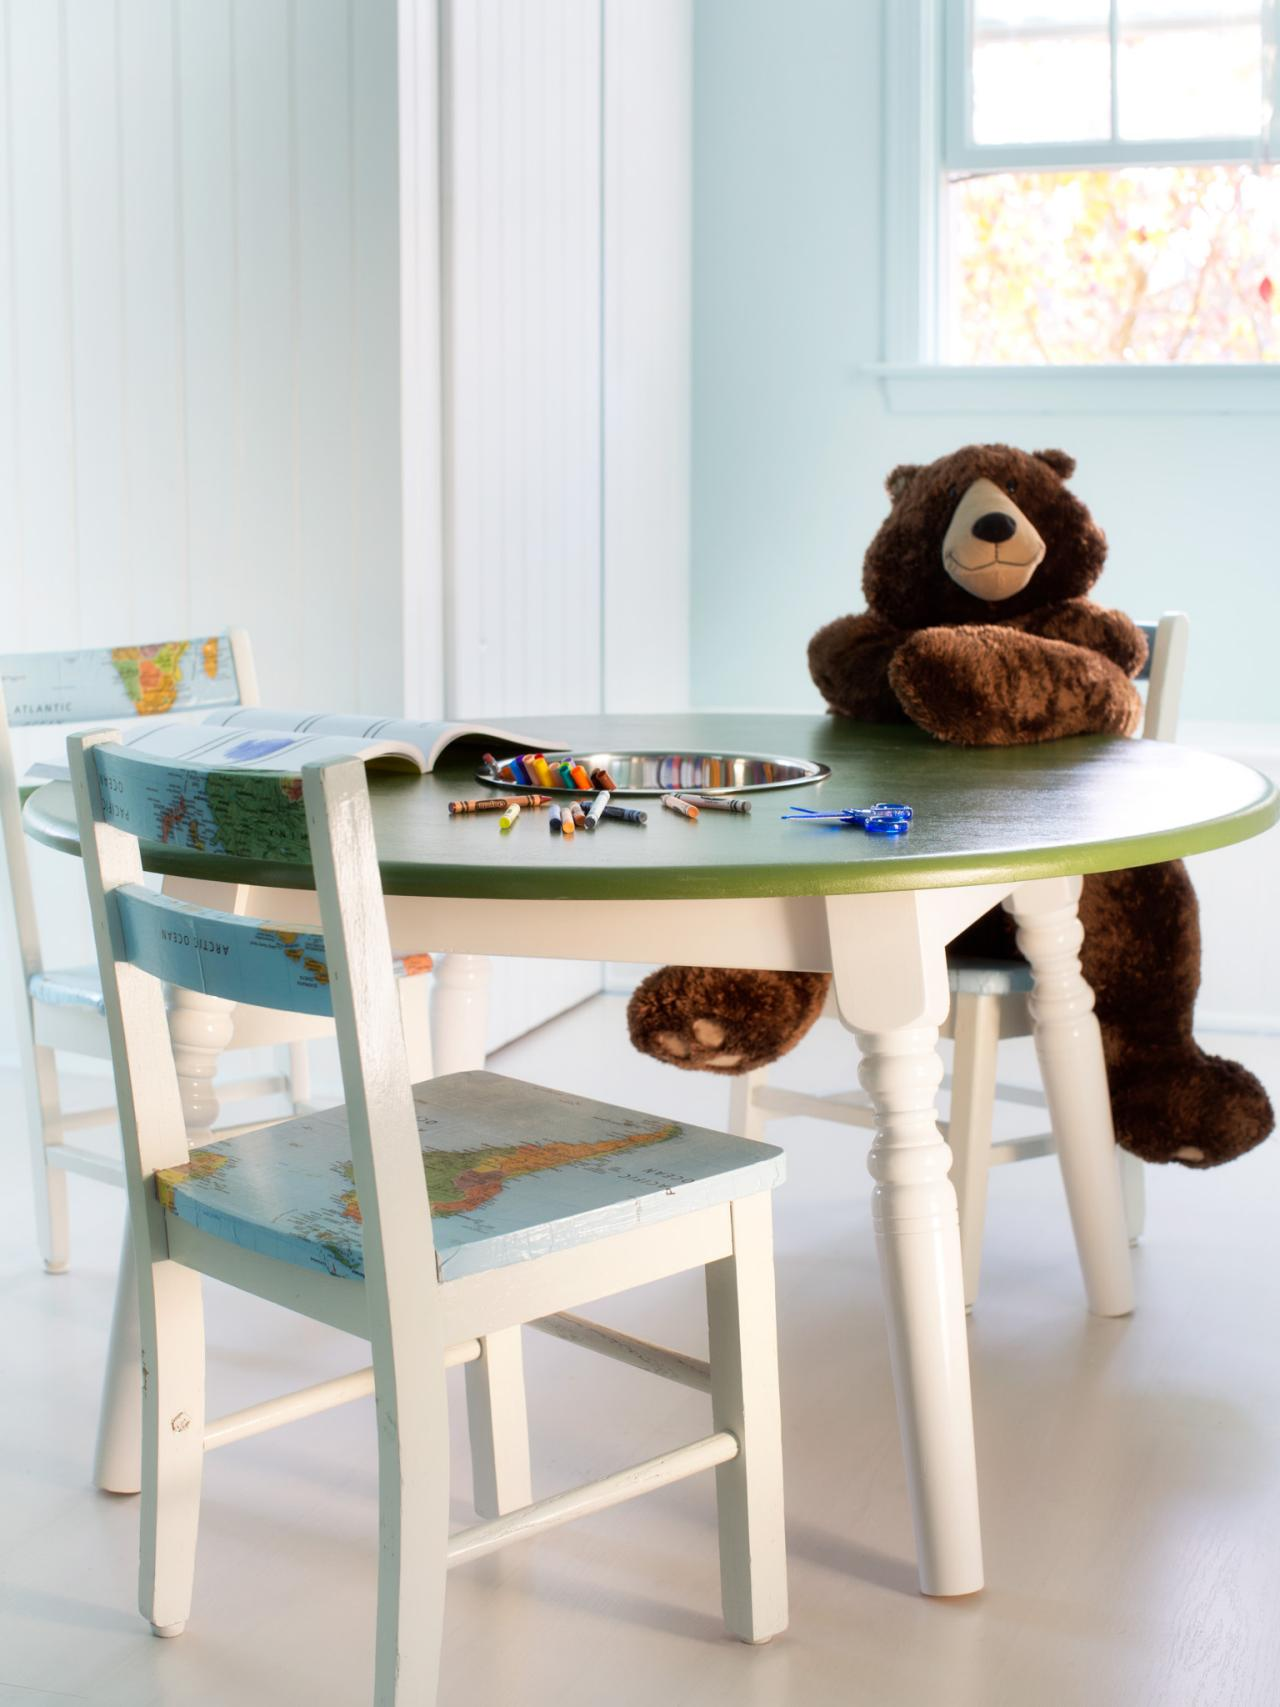 How to Repurpose a Dining Table into a Kids Activity Table